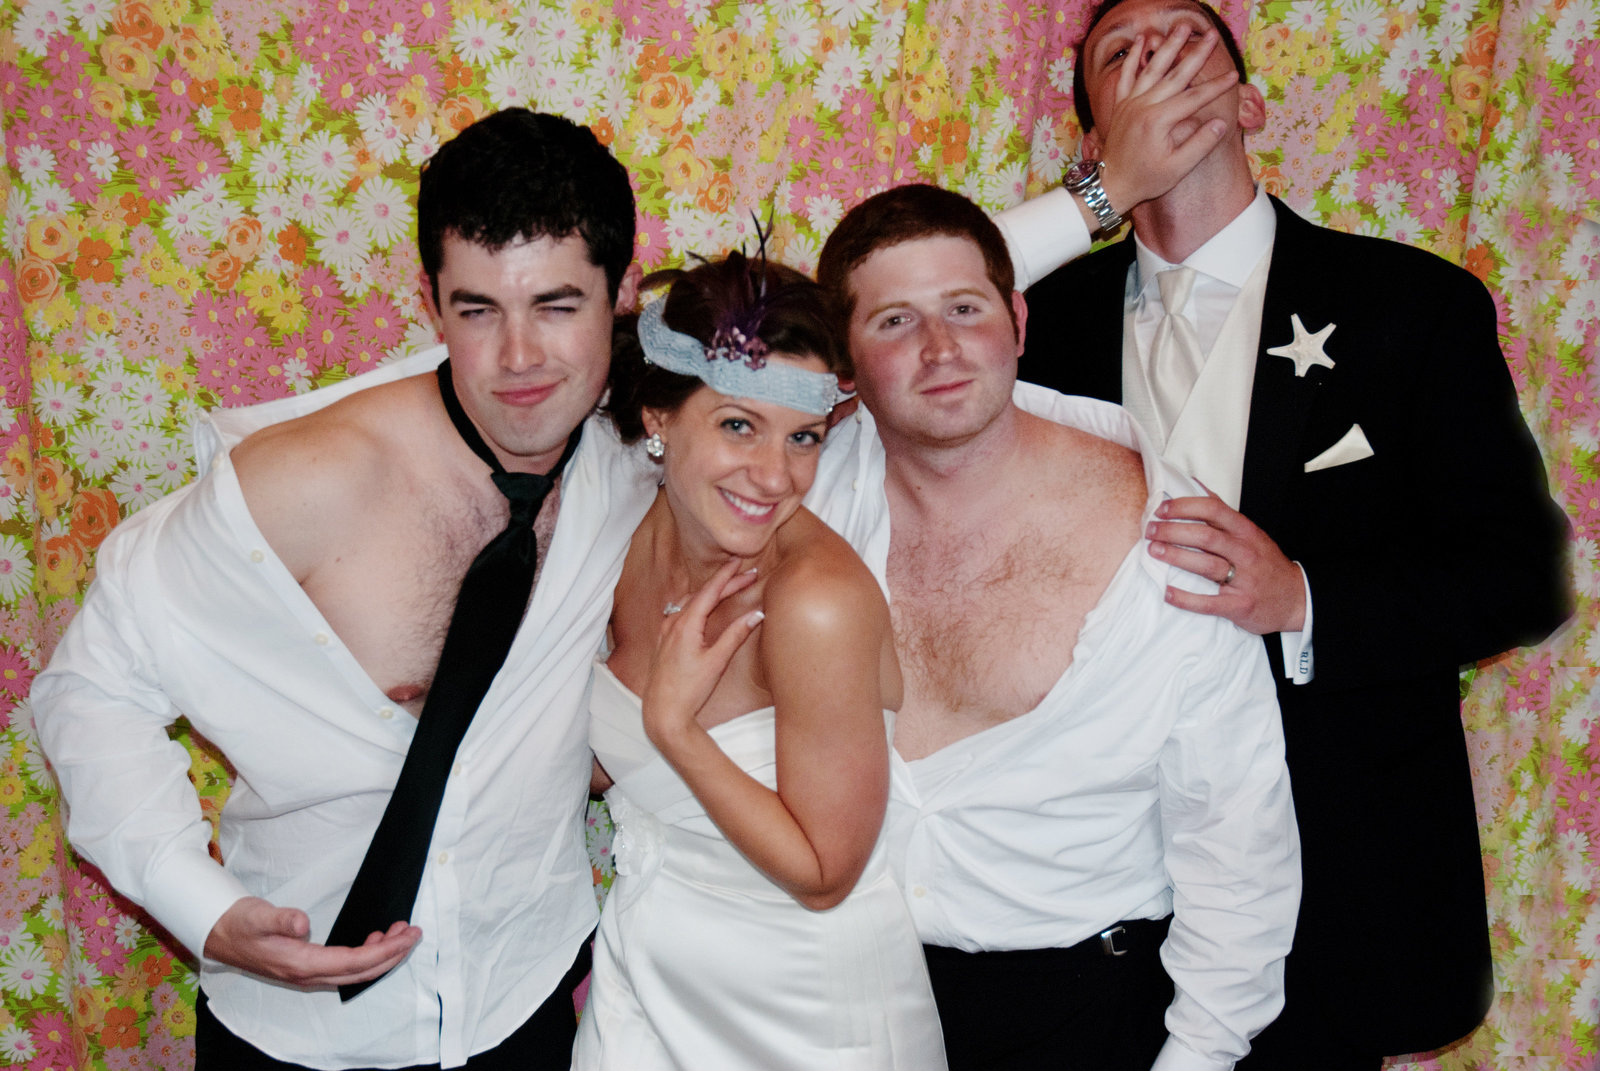 groomsmen steal away the bride in photobooth